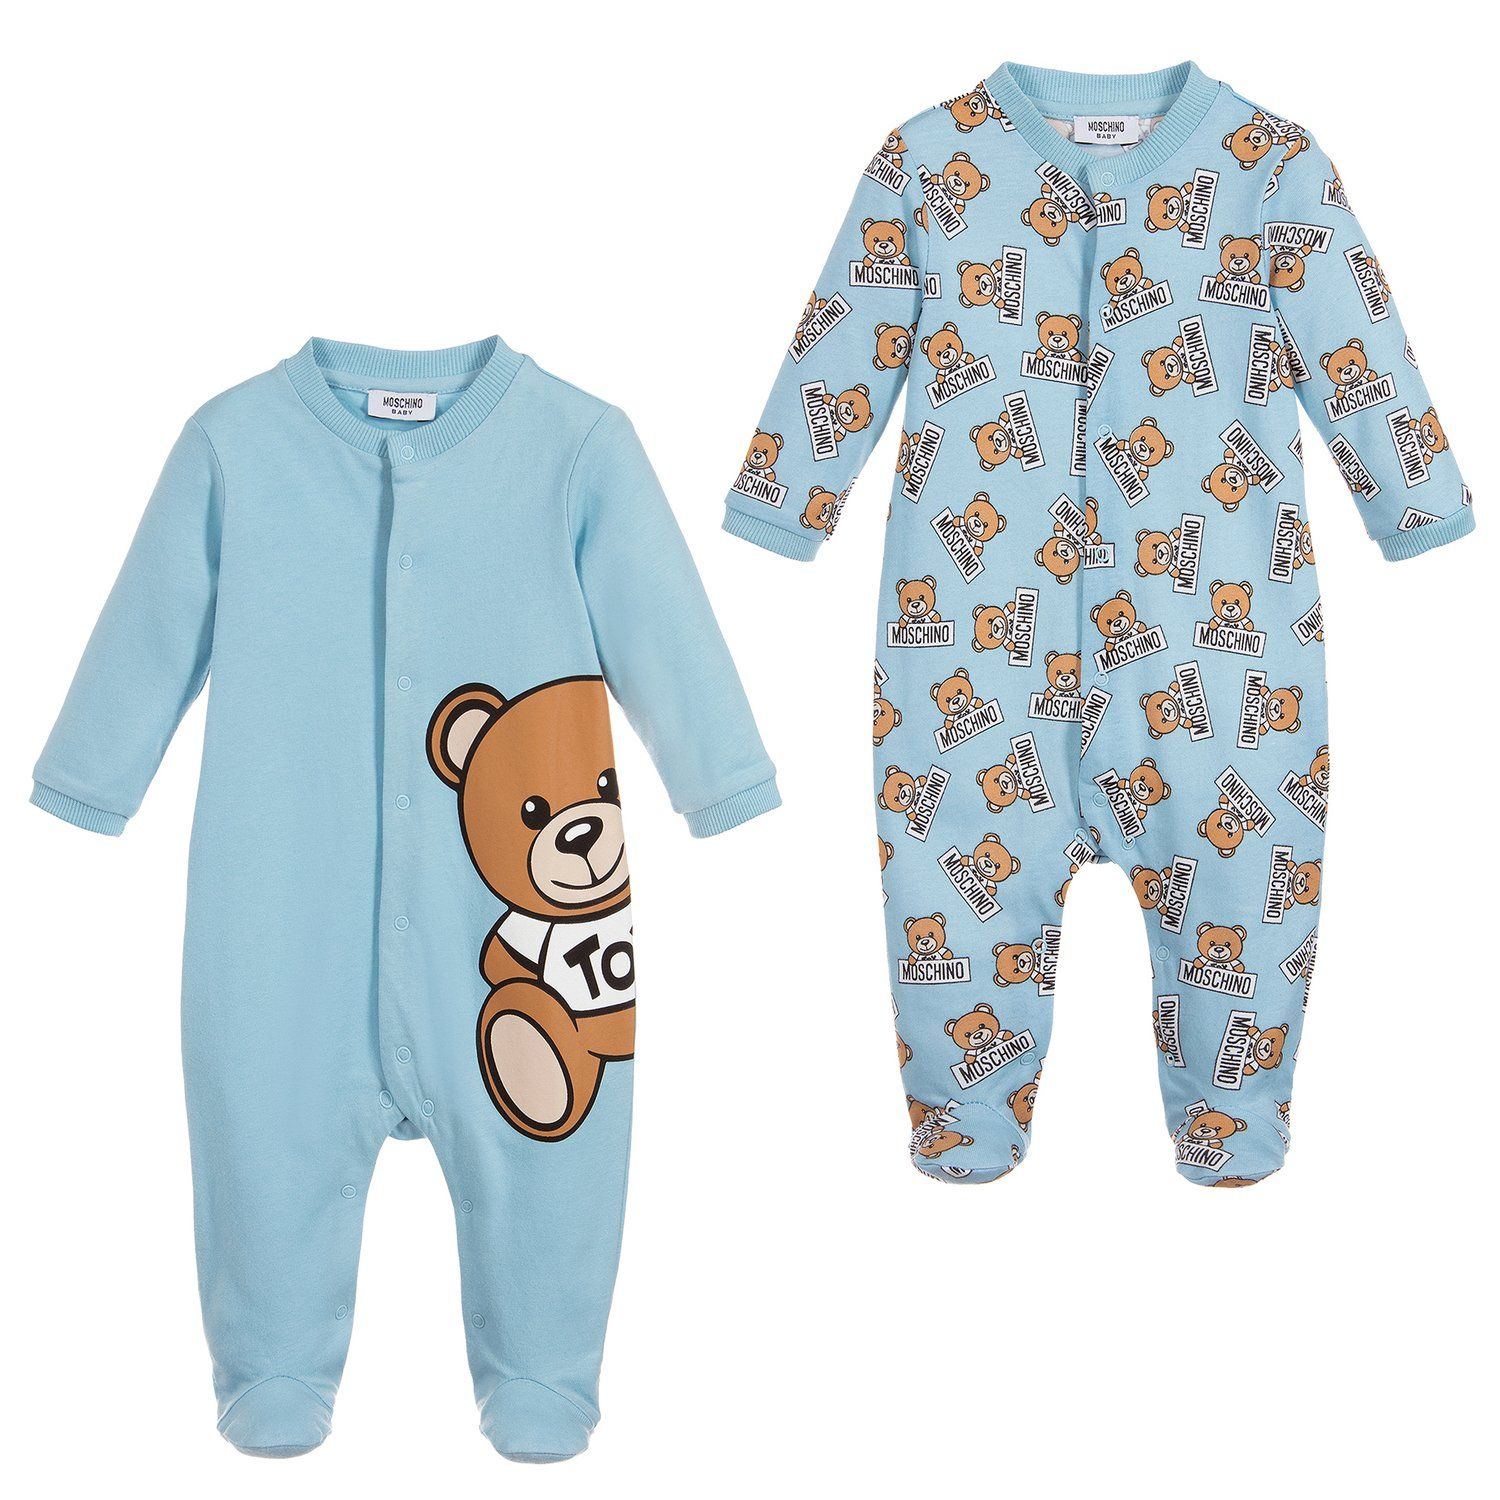 2e1c6273354d Moschino Baby Boys Blue Romper Two Piece Gift Set – Petit New York